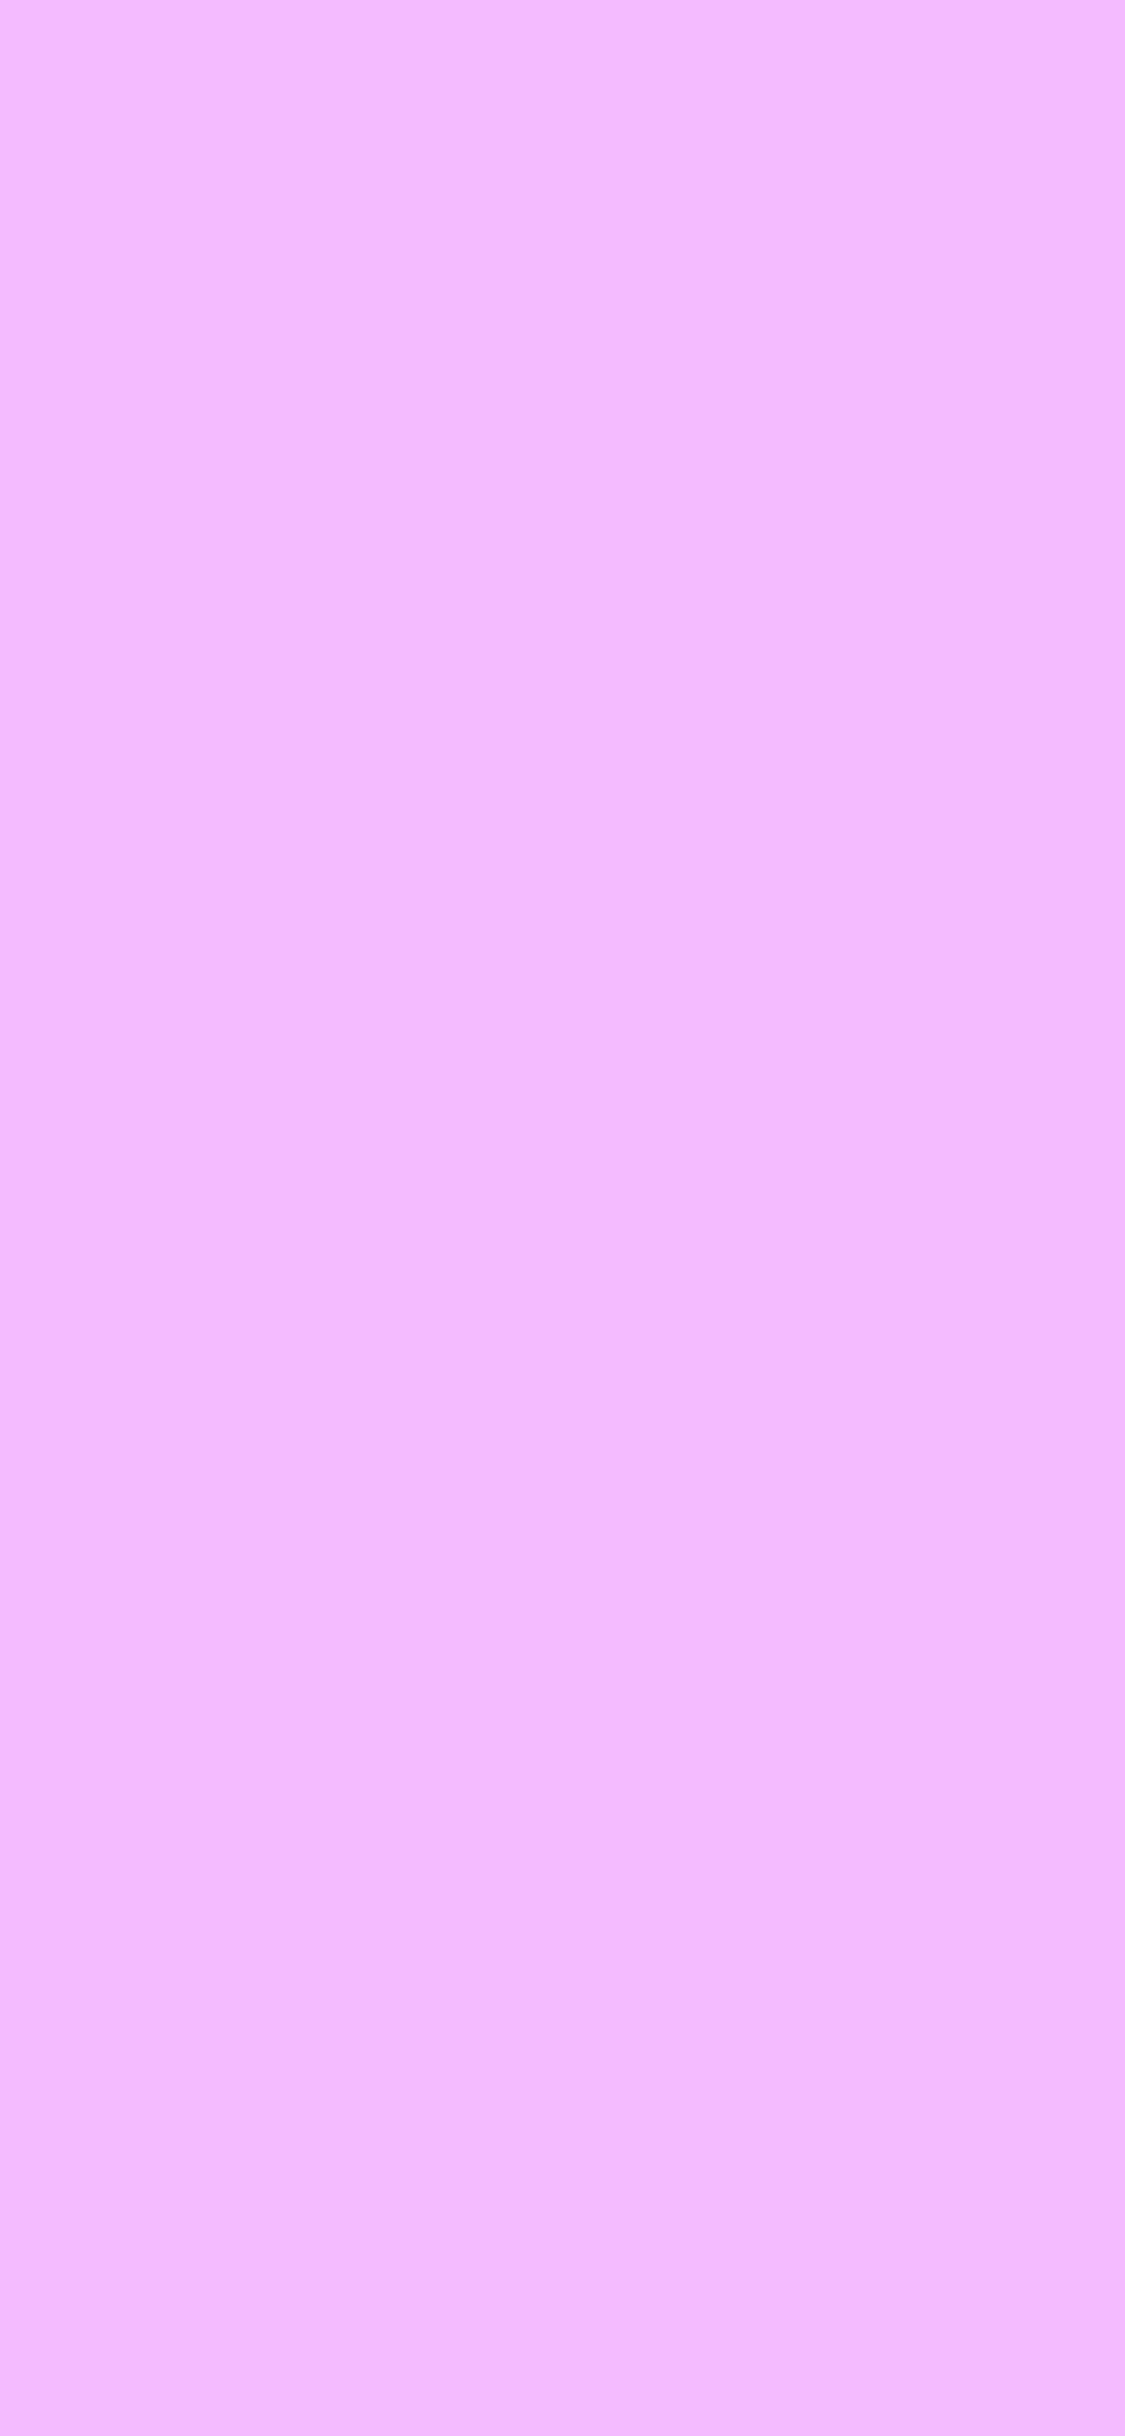 1125x2436 Electric Lavender Solid Color Background